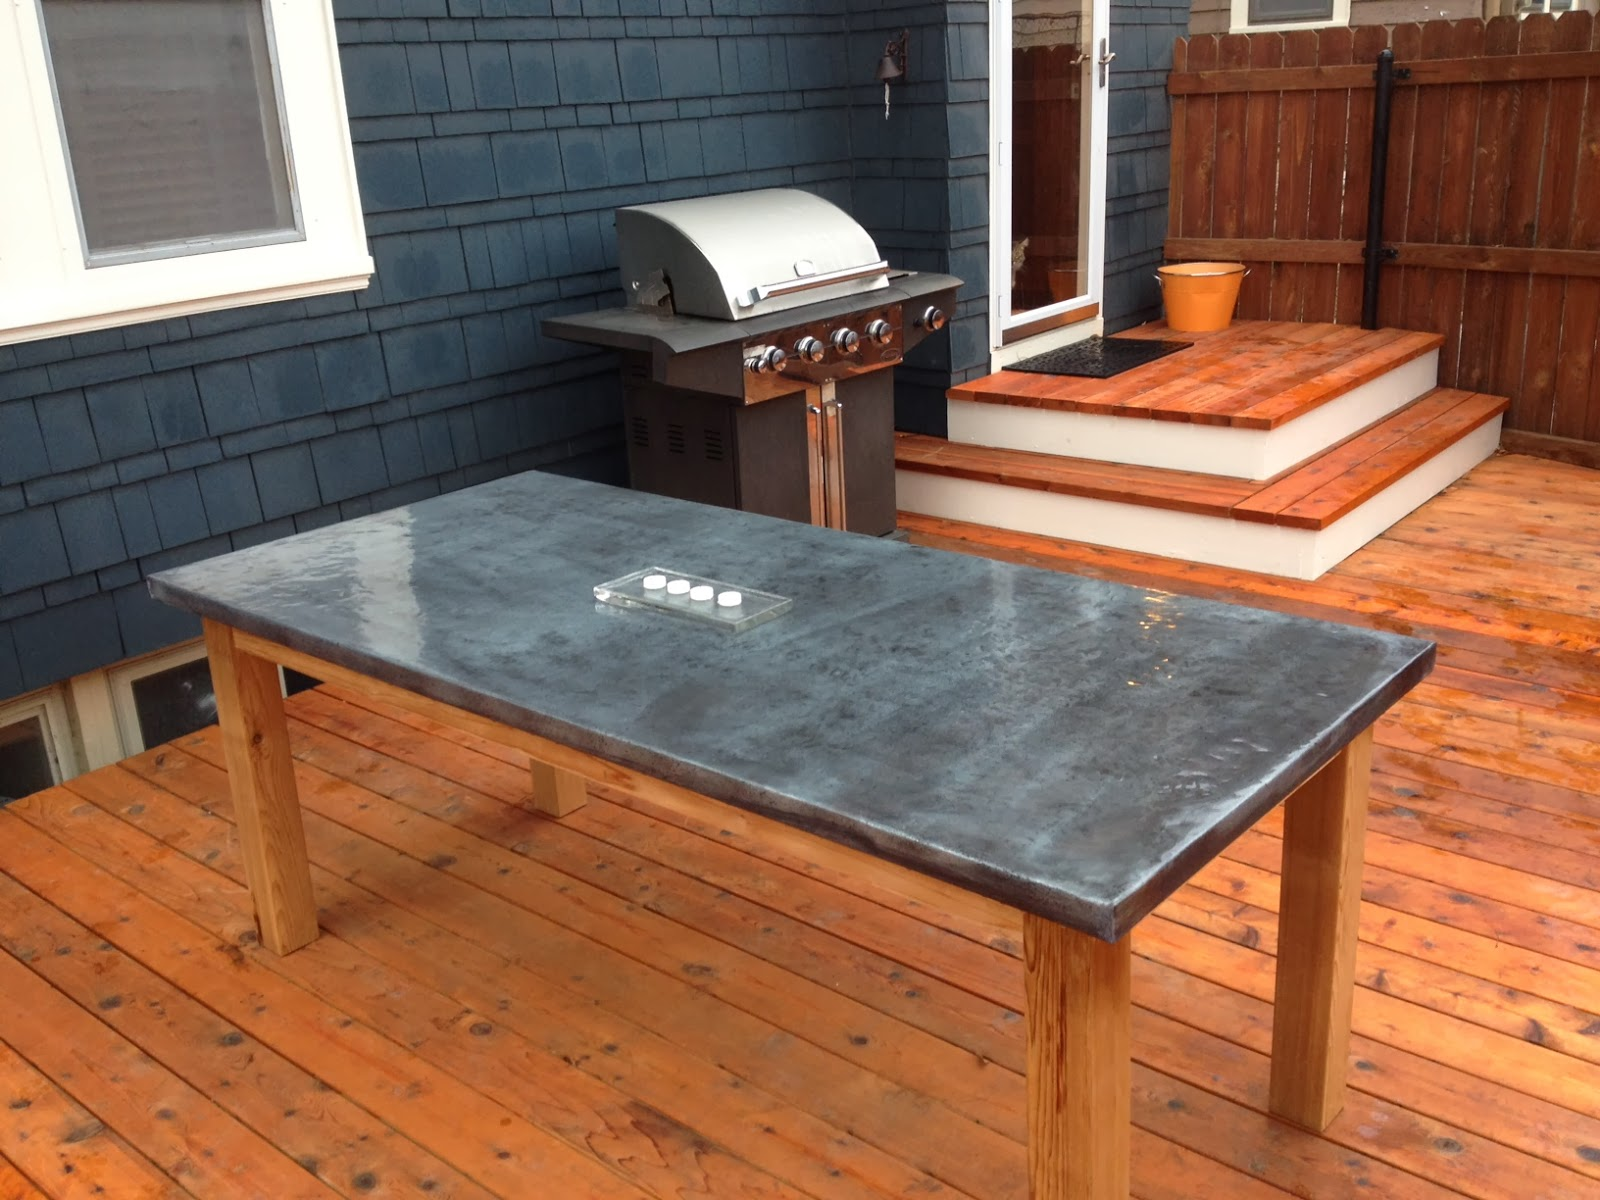 Before And After Kansas City How To Make A Diy Outdoor